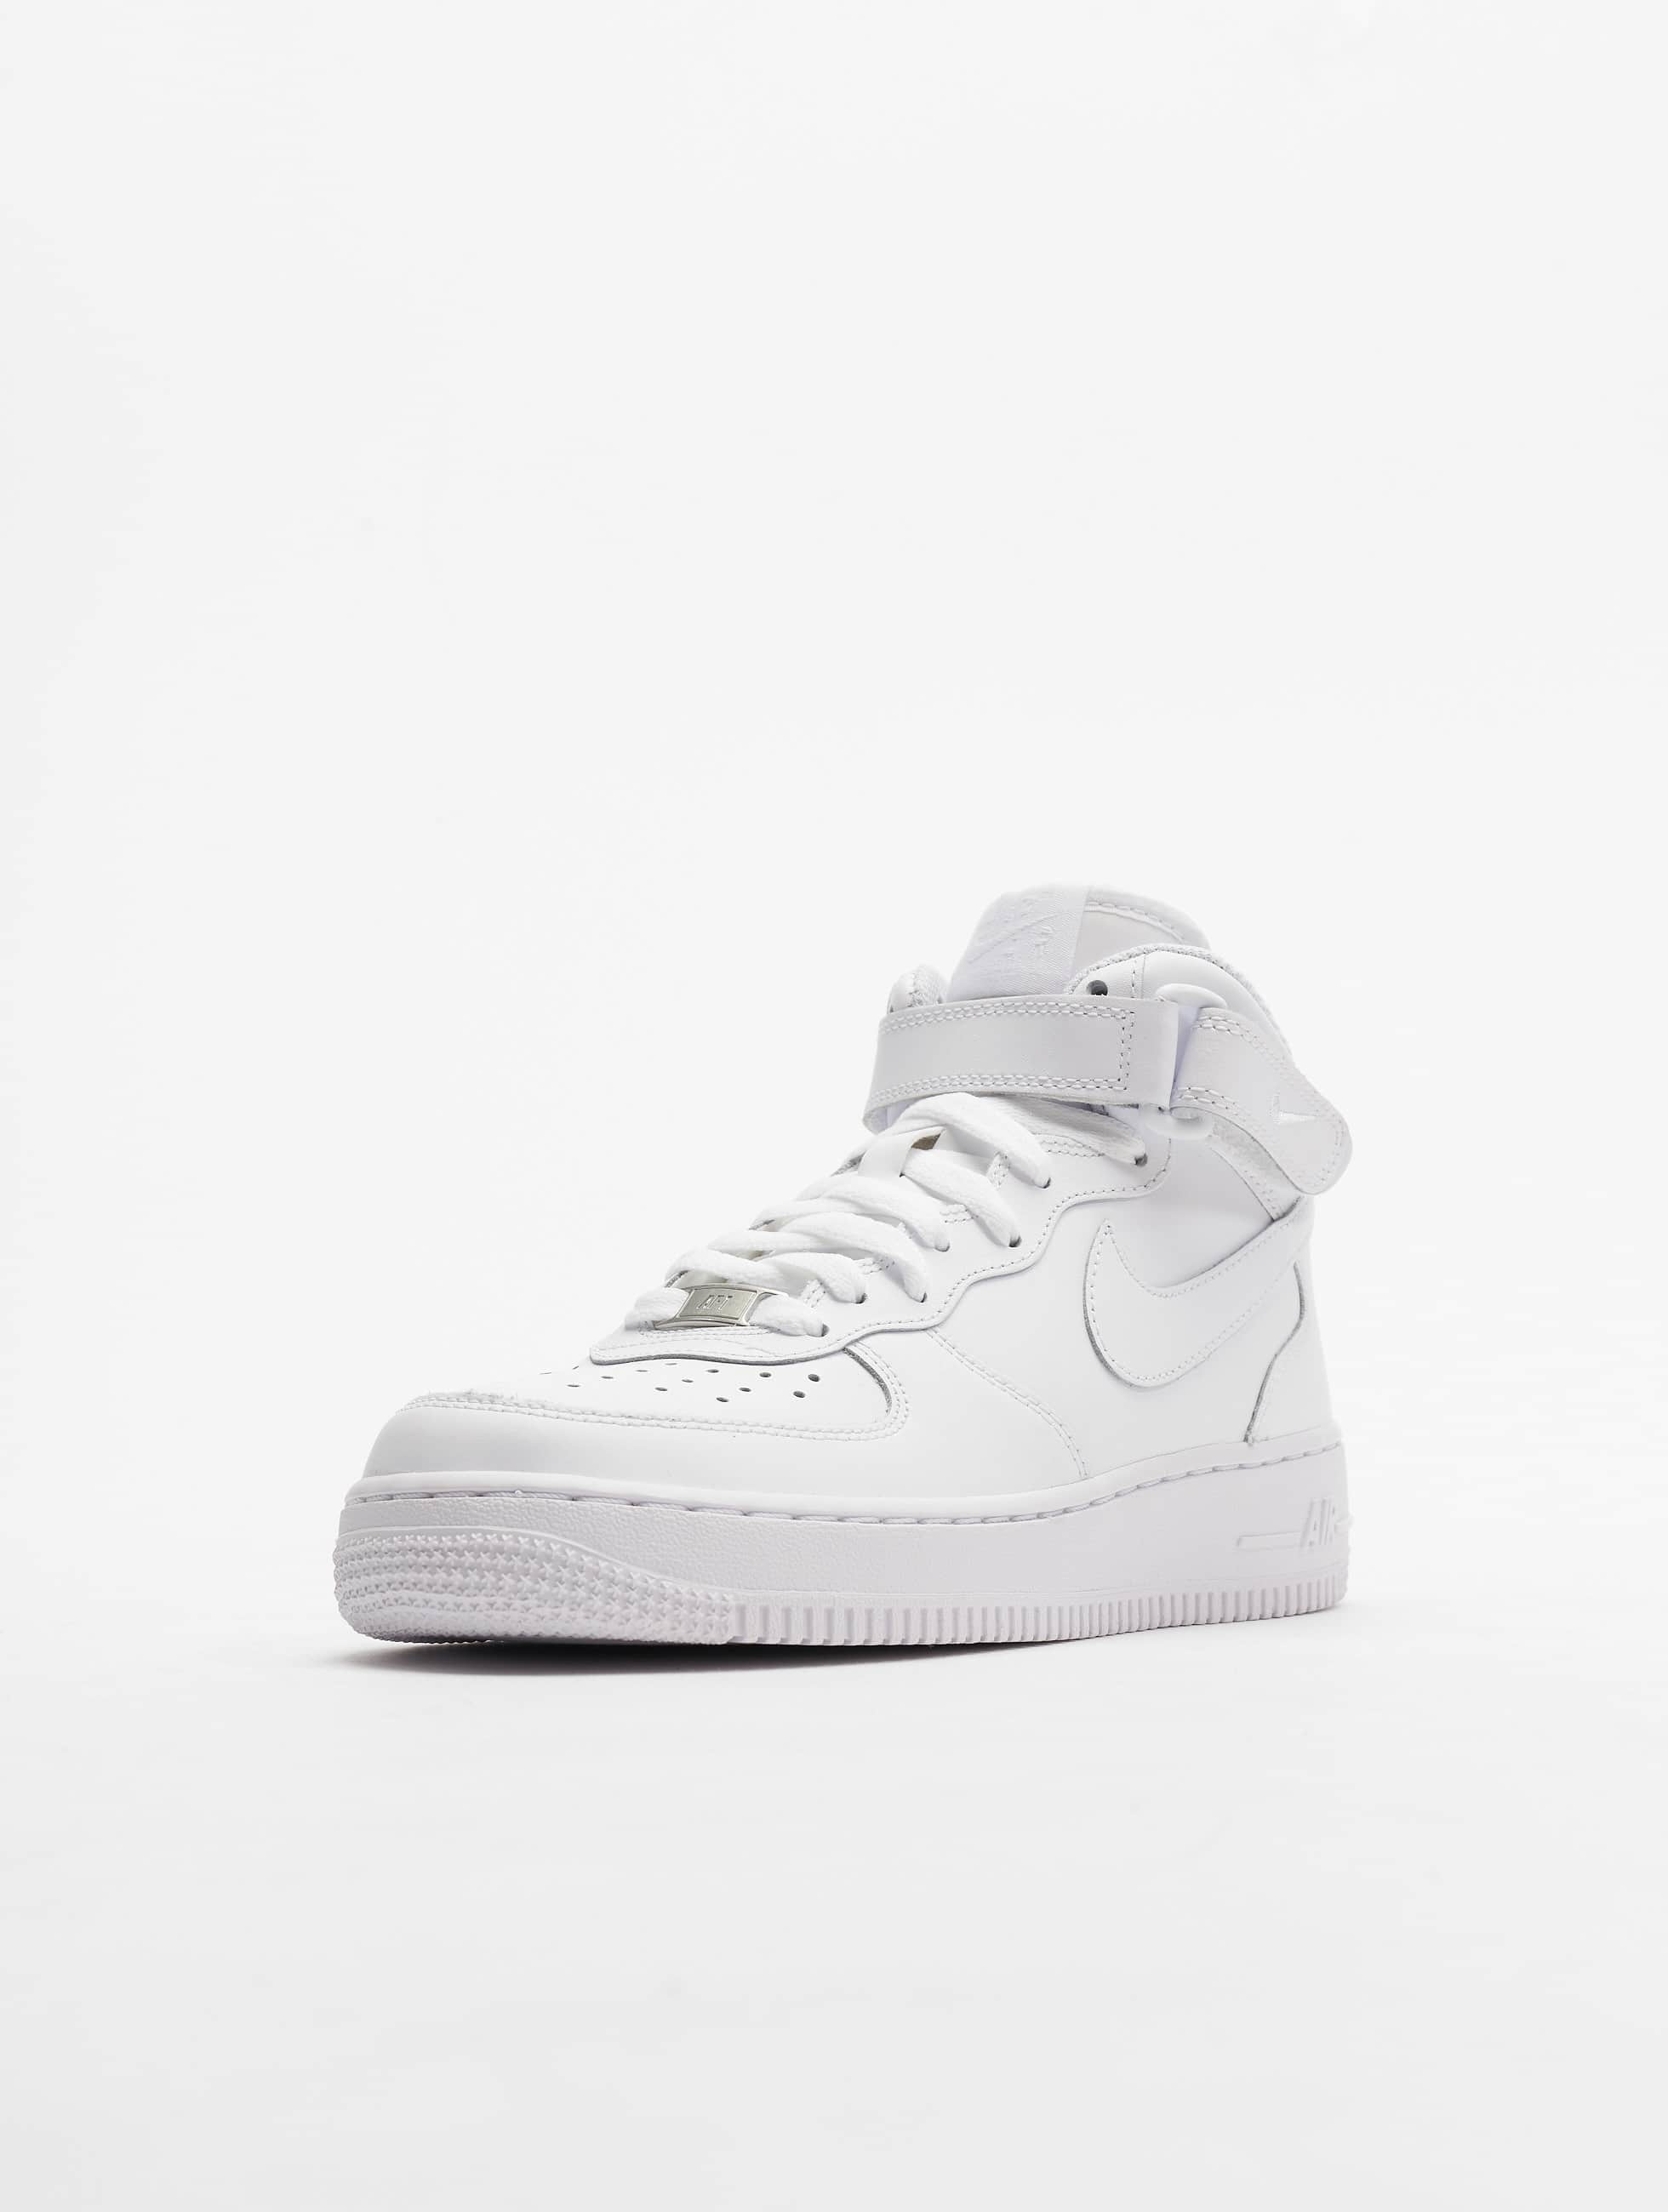 buy popular d7e38 39b3a Nike Air Force 1 Mid Blanche Baskets Bébé nike air max healthwalker v, plus  - nike air force blanche montante, ...